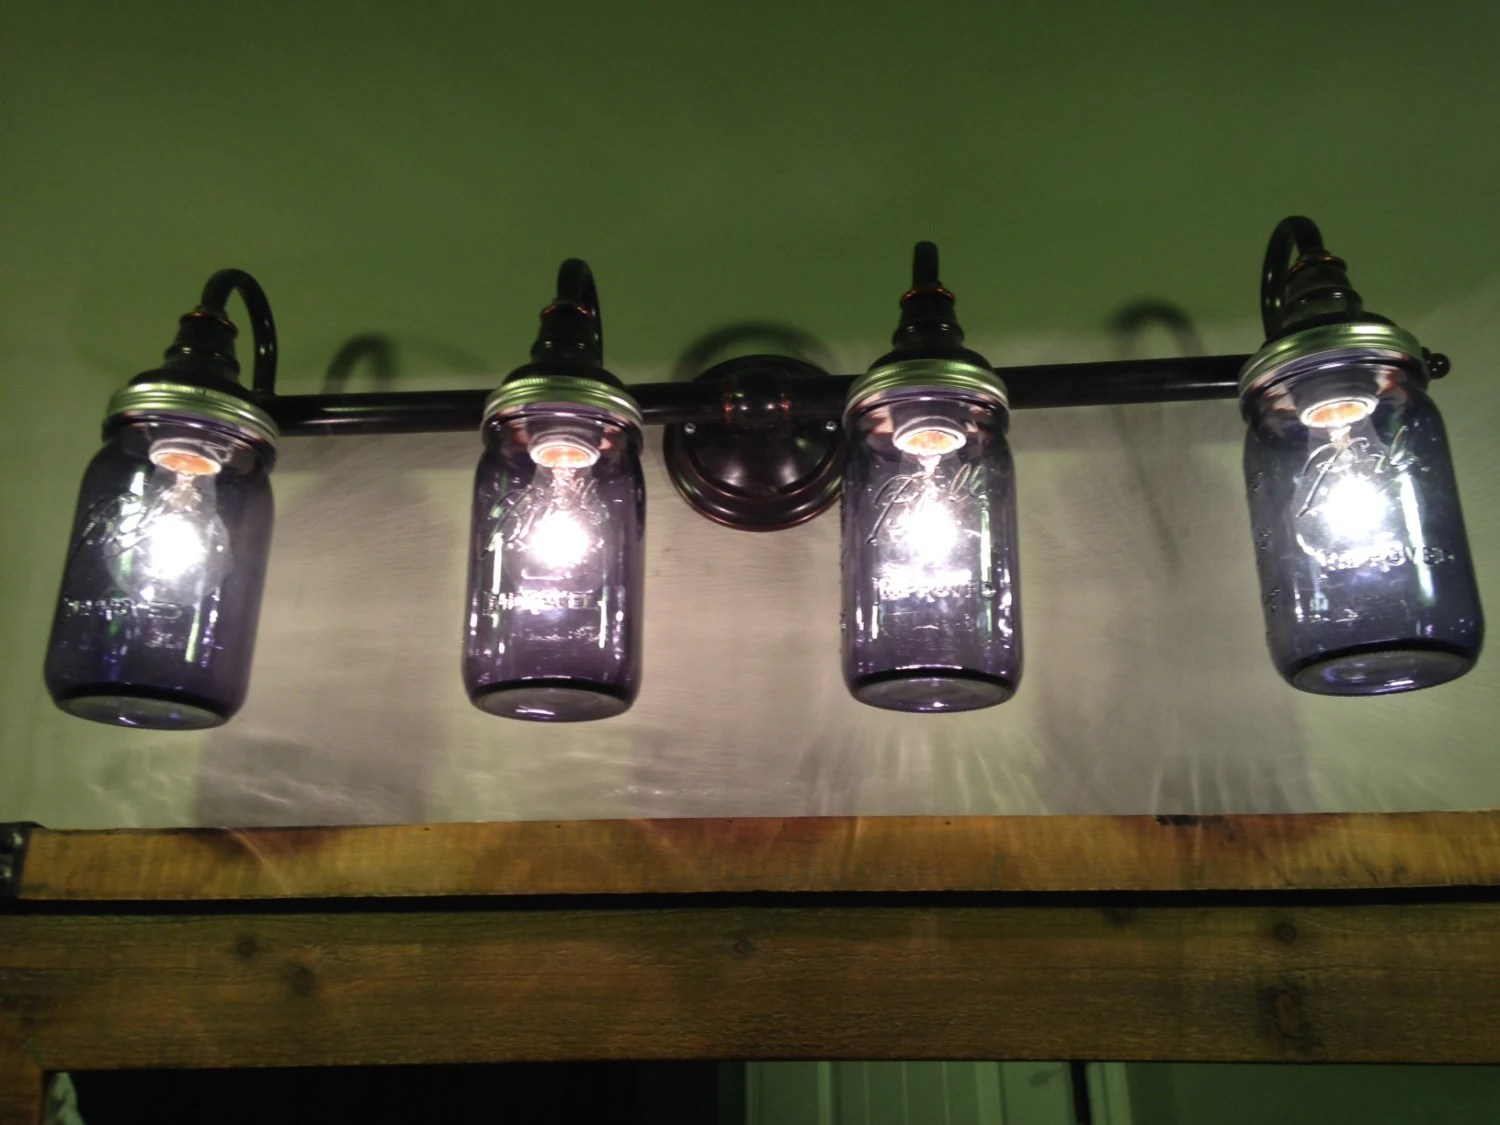 Mason Jar Bathroom Light Mason Jar Lights Bathroom Lighting Vanity Lights Green Mason Jars Purple Mason Jars Clear Mason Jars Blue Mason Jars